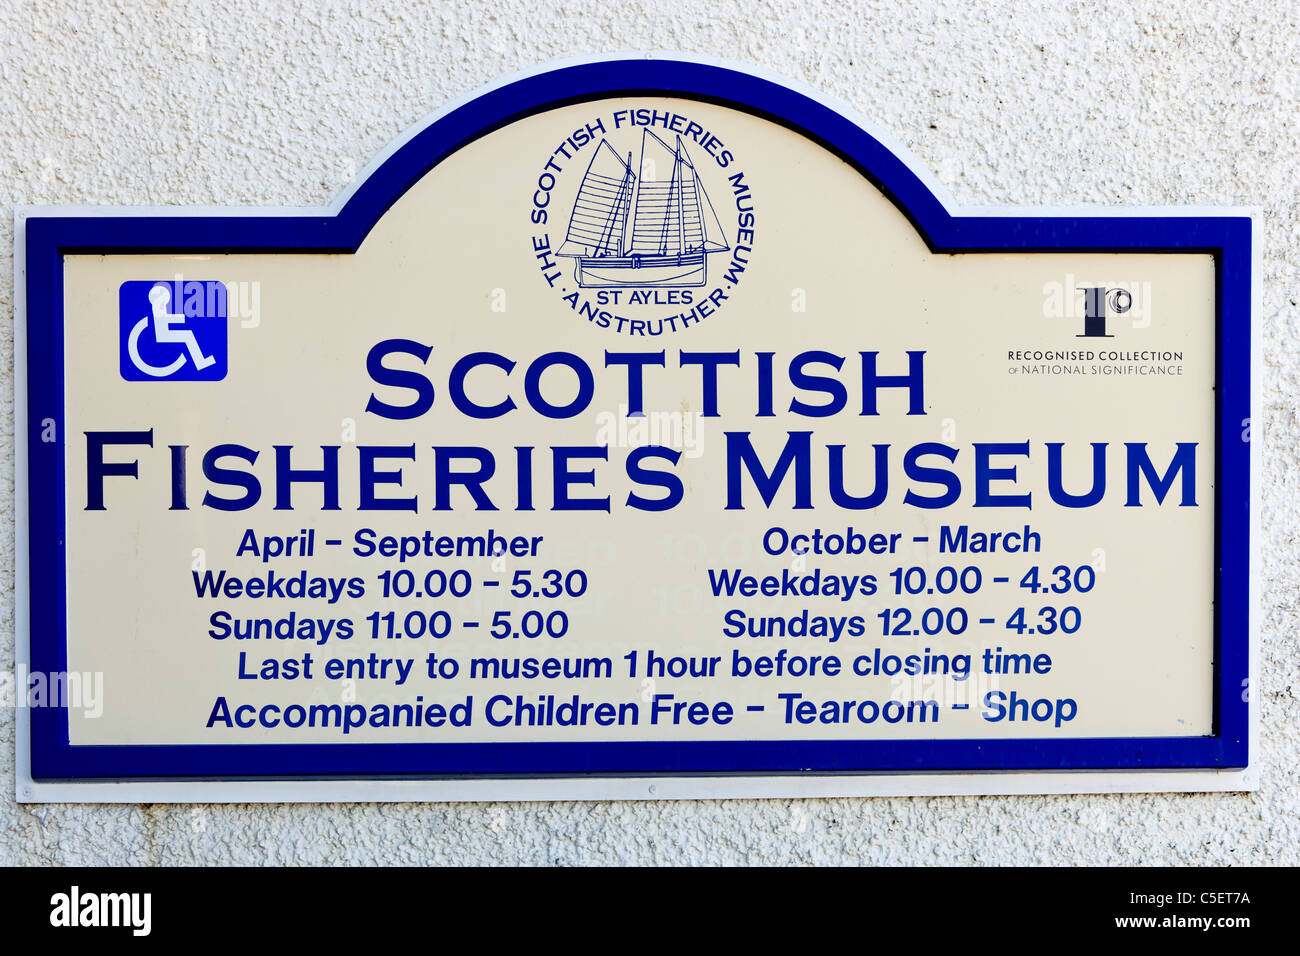 Sign for the Scottish Fisheries Museum, Anstruther, East Neuk, Fife, Scotland, UK - Stock Image